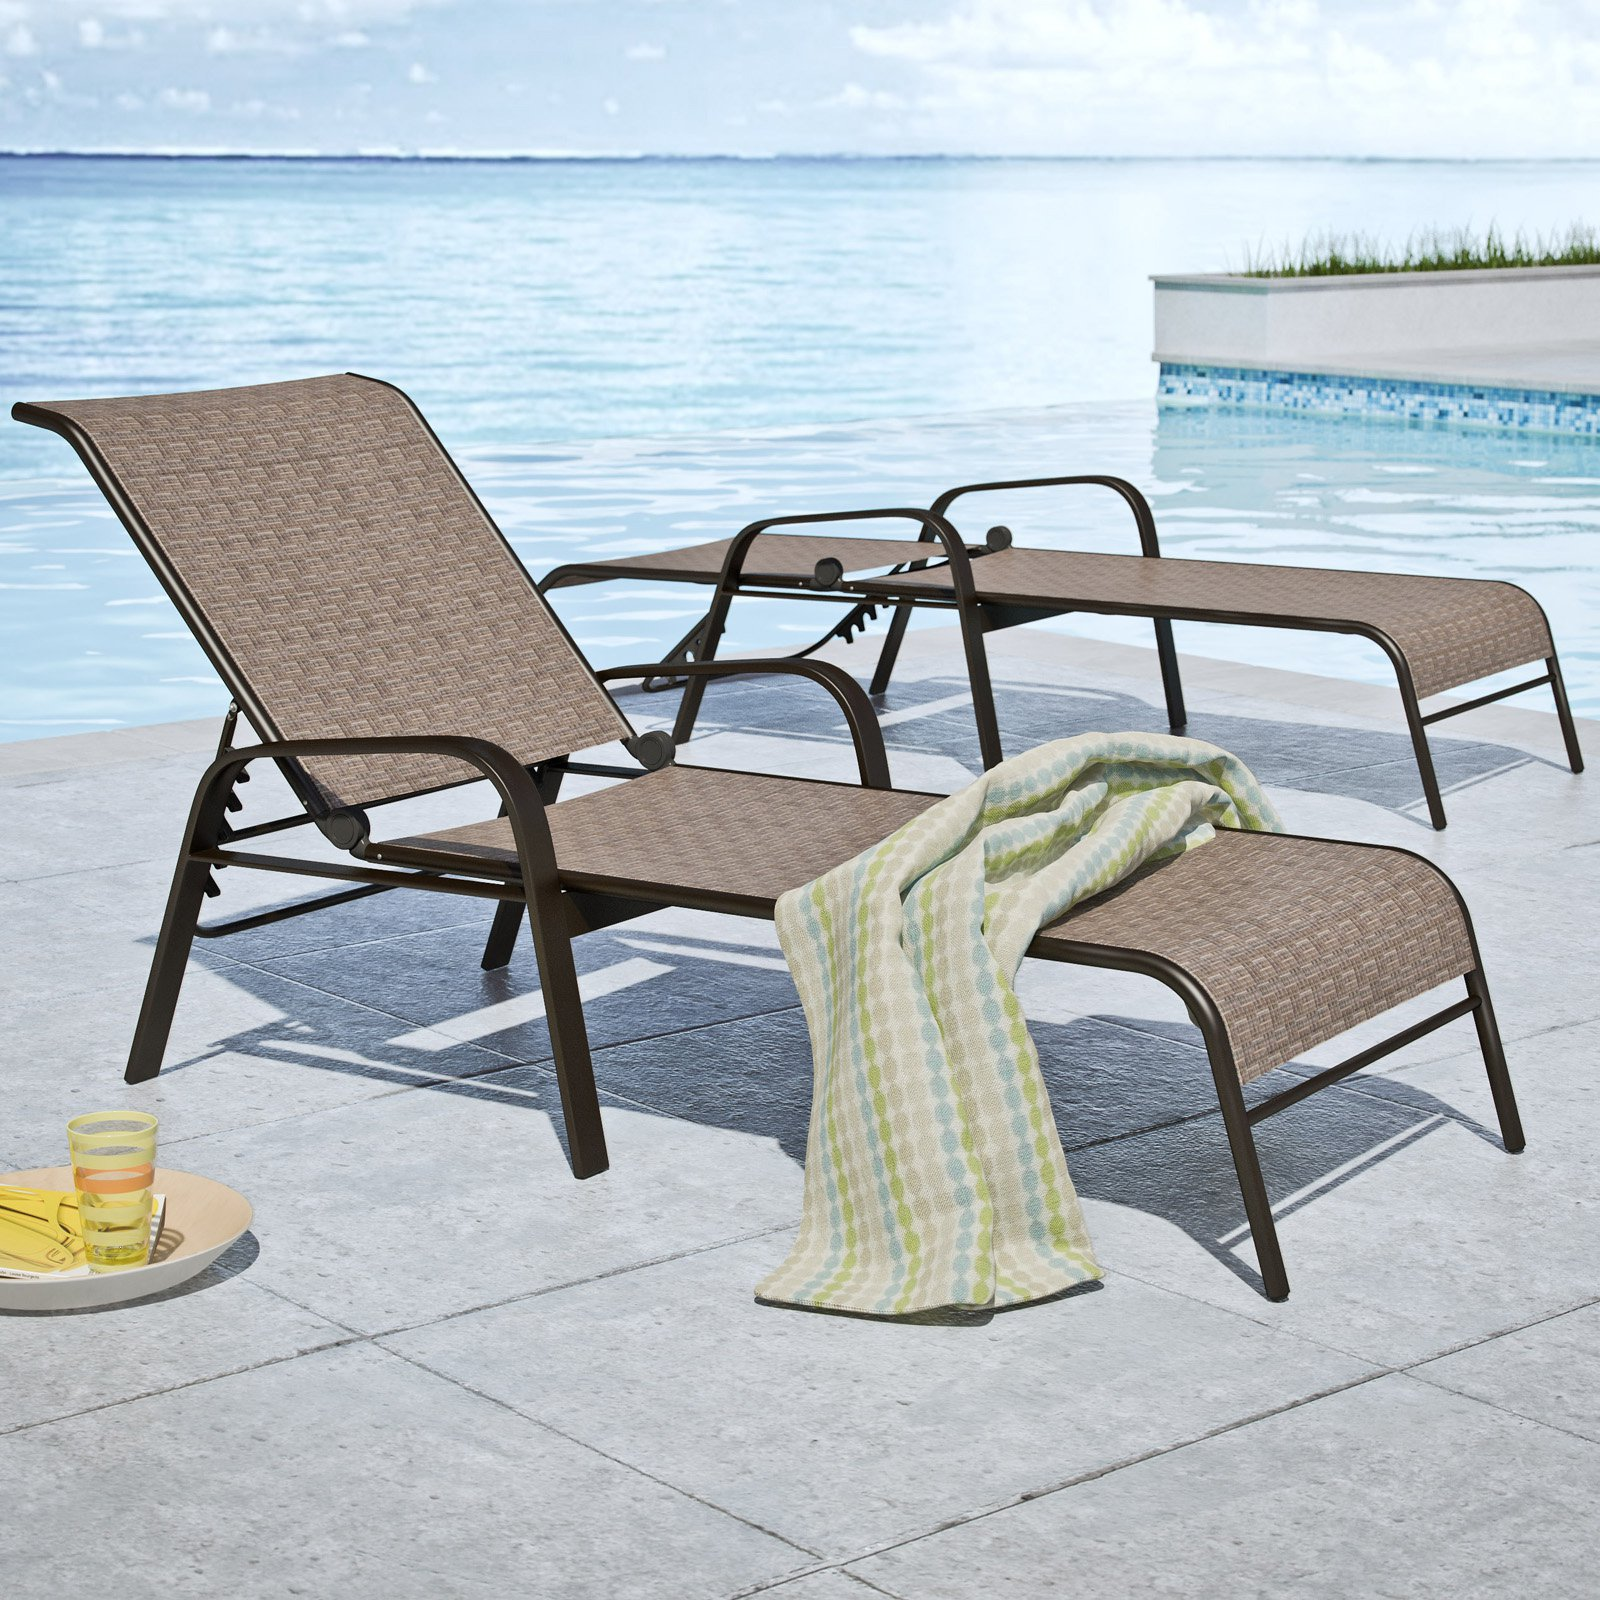 Charmant CorLiving Brown Mesh Reclining Patio Loungers, Set Of 2